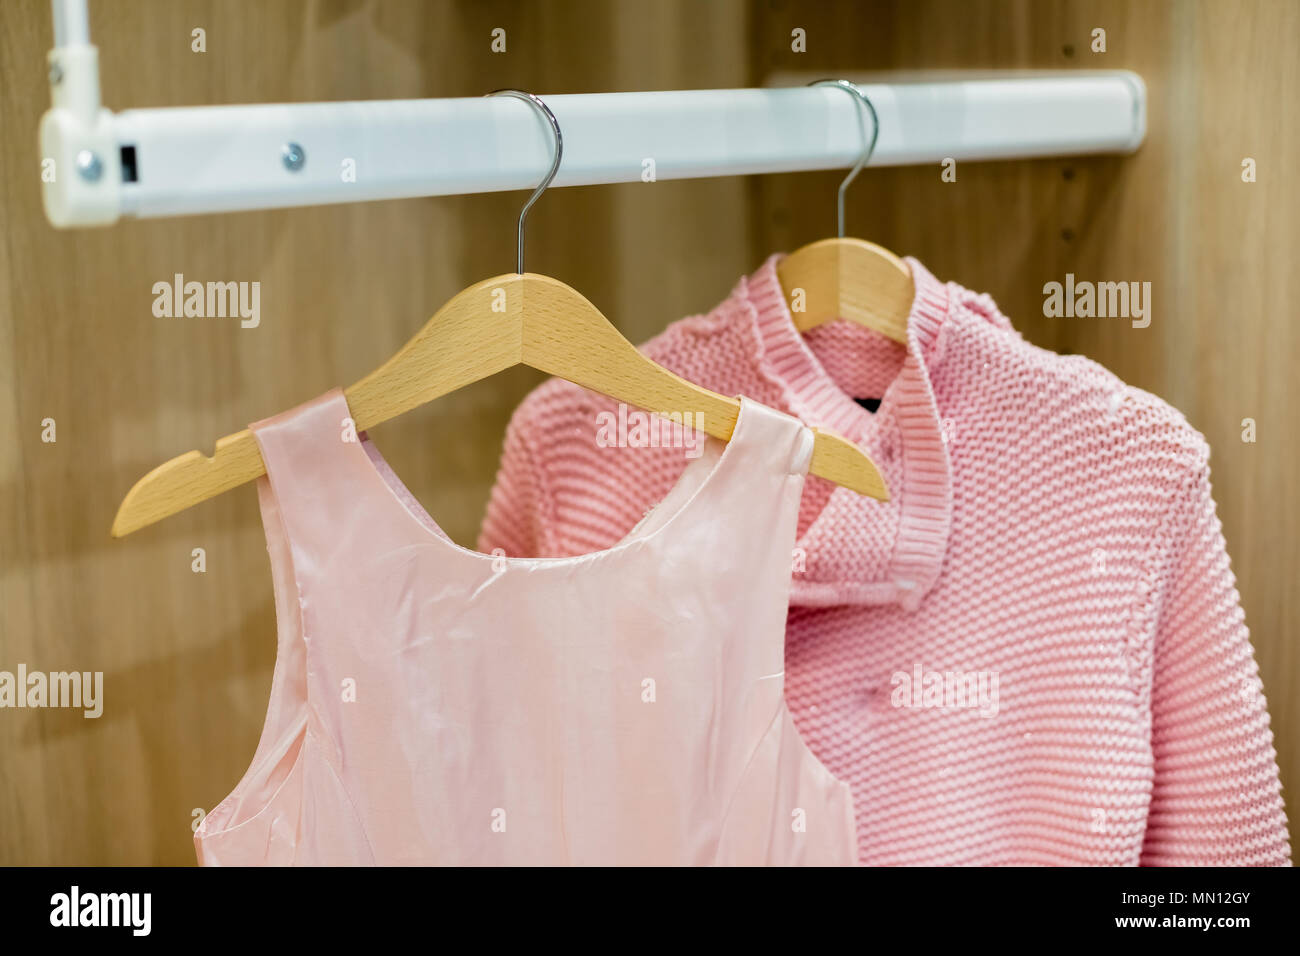 09c930366c69 A row of children clothes hanging on hangers. Fashion for girls ...